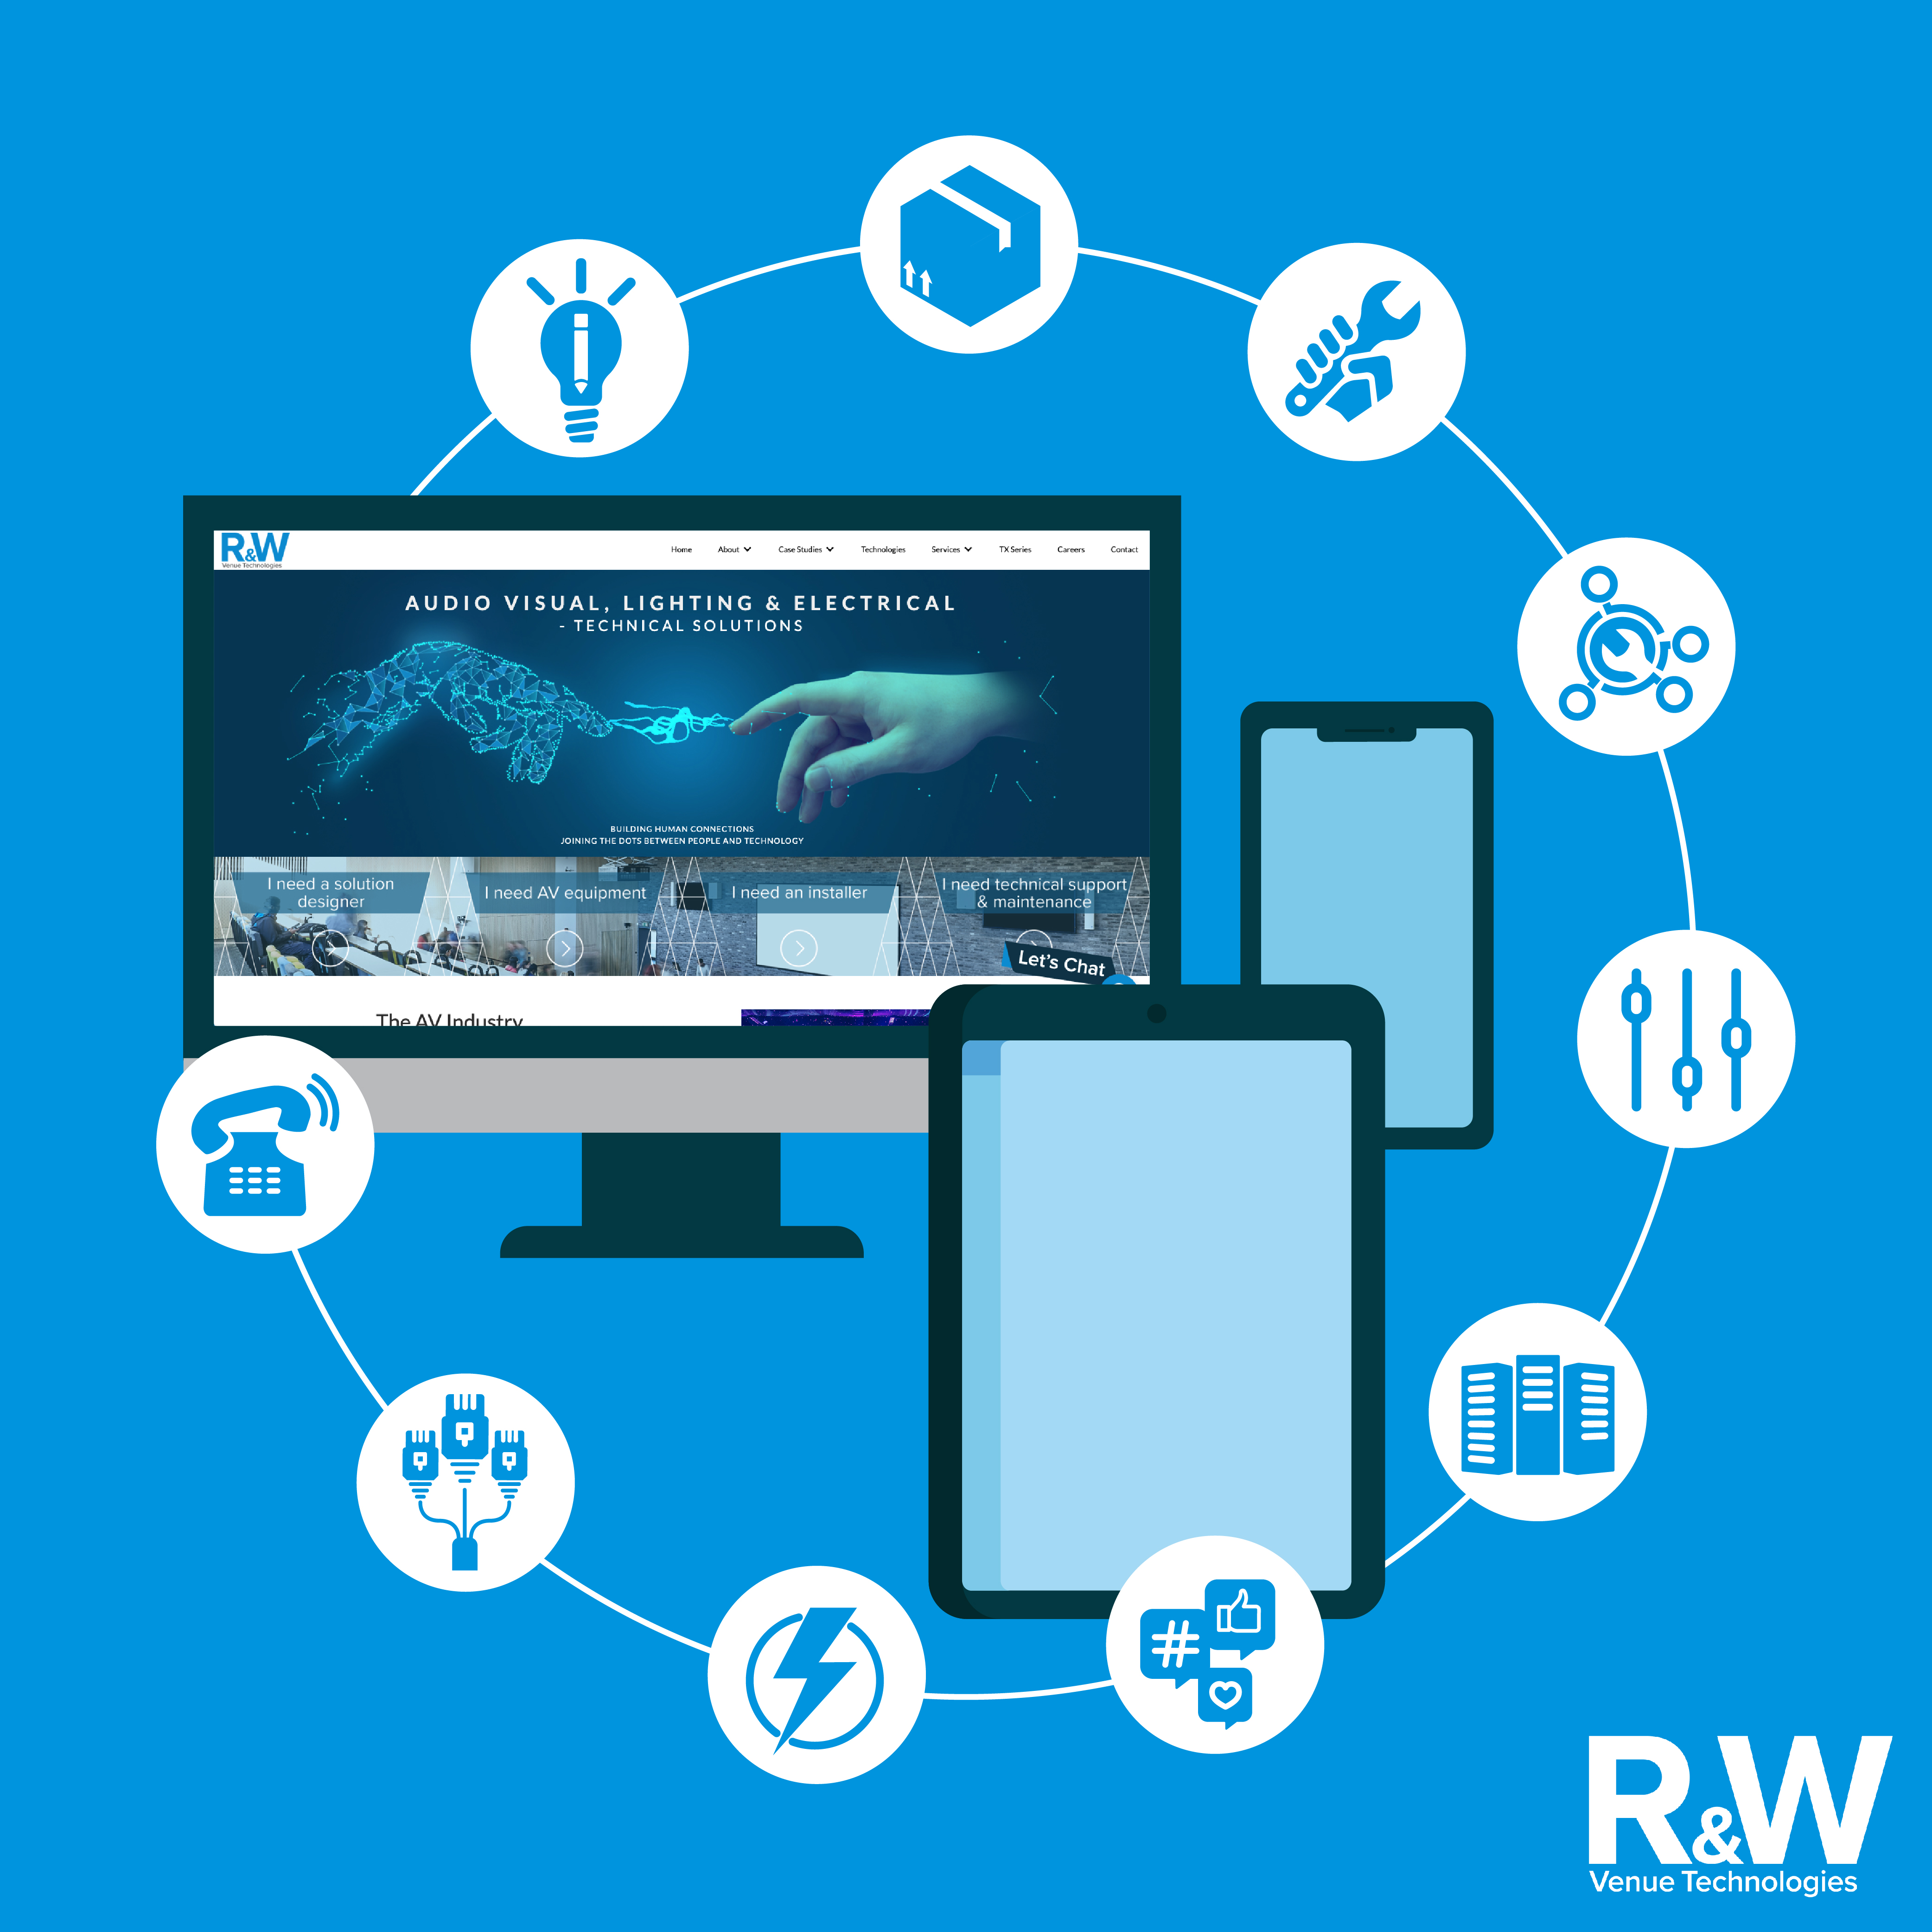 R&W servicing for audio video and lighting installation